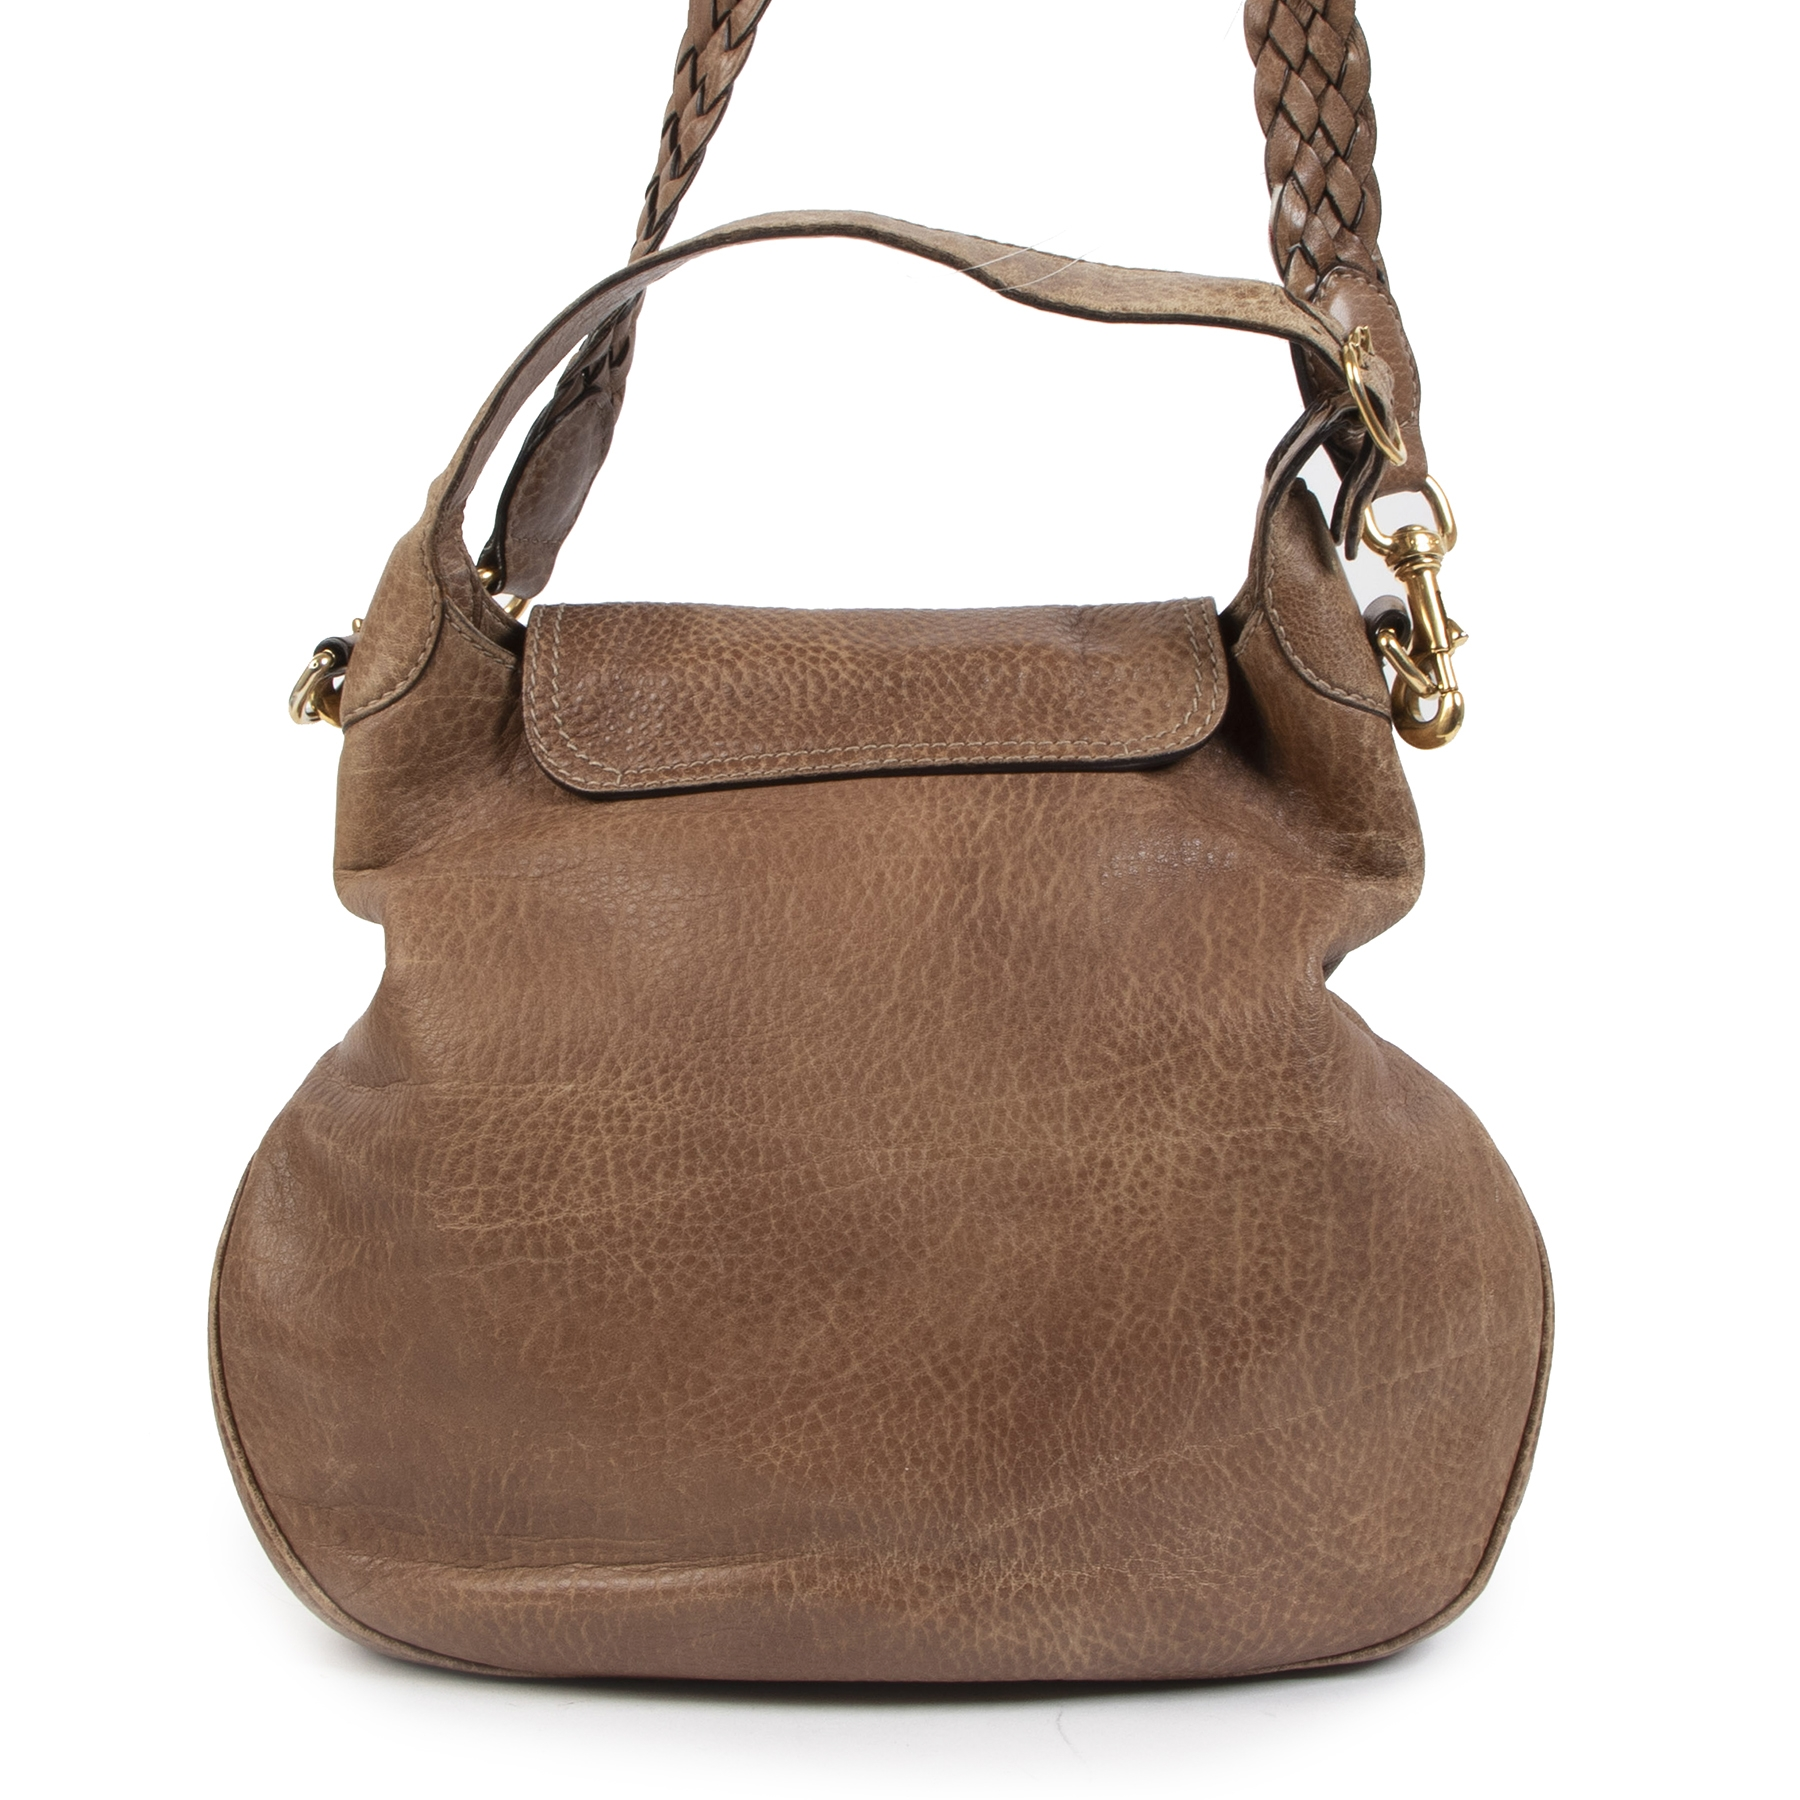 Authentieke tweedehands vintage Gucci Camel New Pelham Hobo Bag koop online webshop LabelLOV